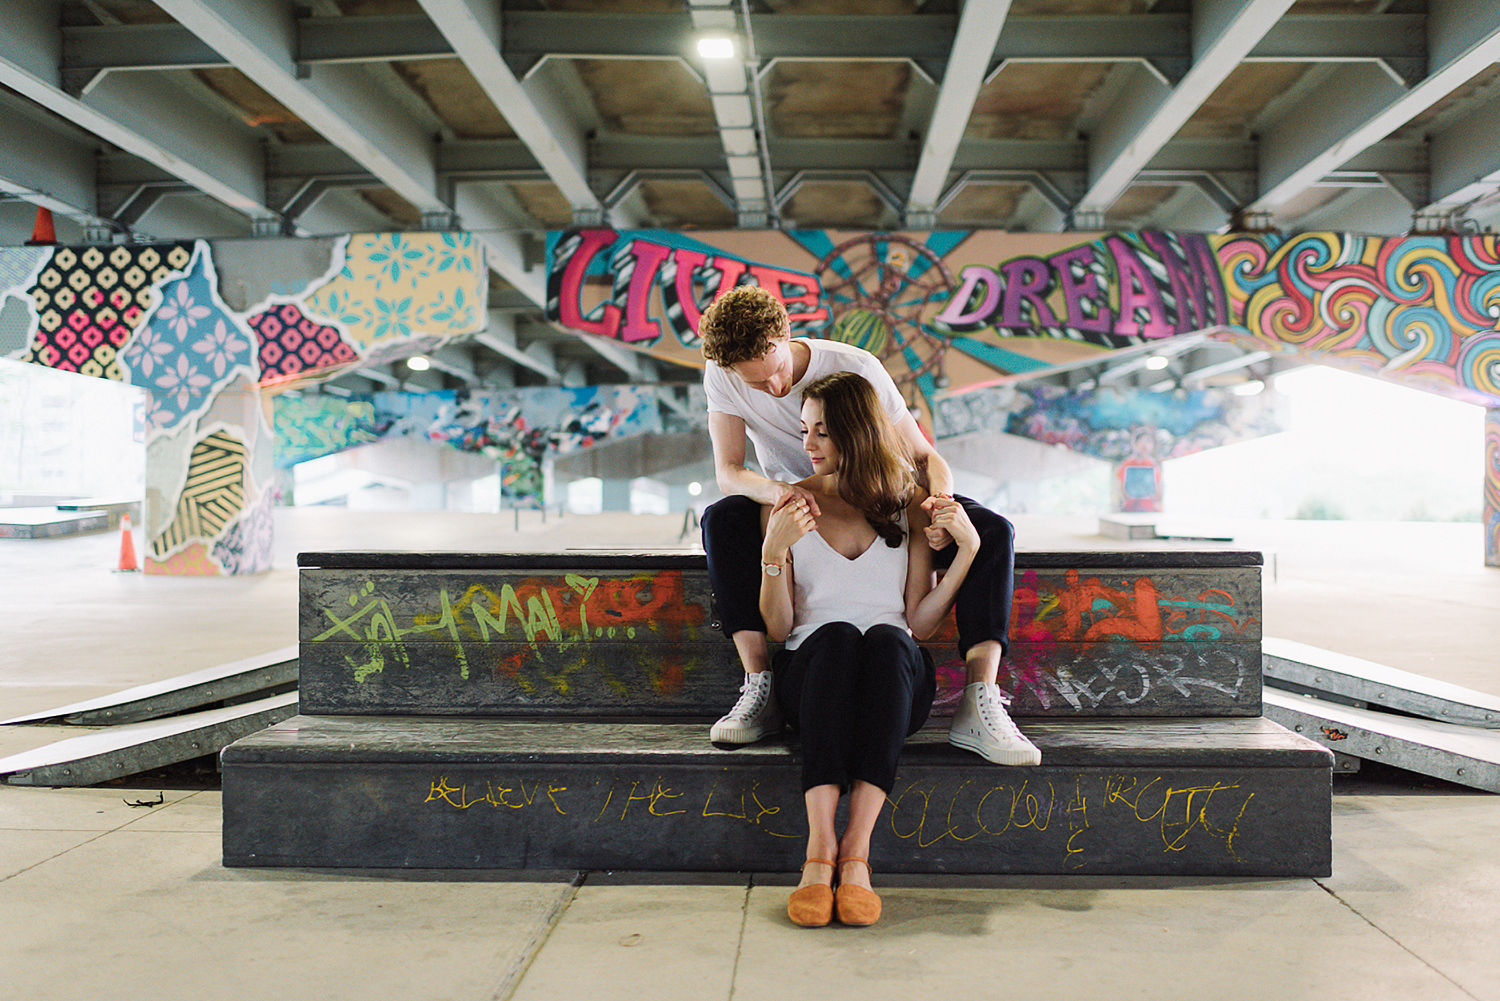 toronto-engagement-session-east-end-toronto-engagement-session-locations-underpass-park-engagement-alternative-hipster-wedding-photography-artistic-intimate-editorial-engagement-photos-skate-park-fashion-fine-art-skater.jpg